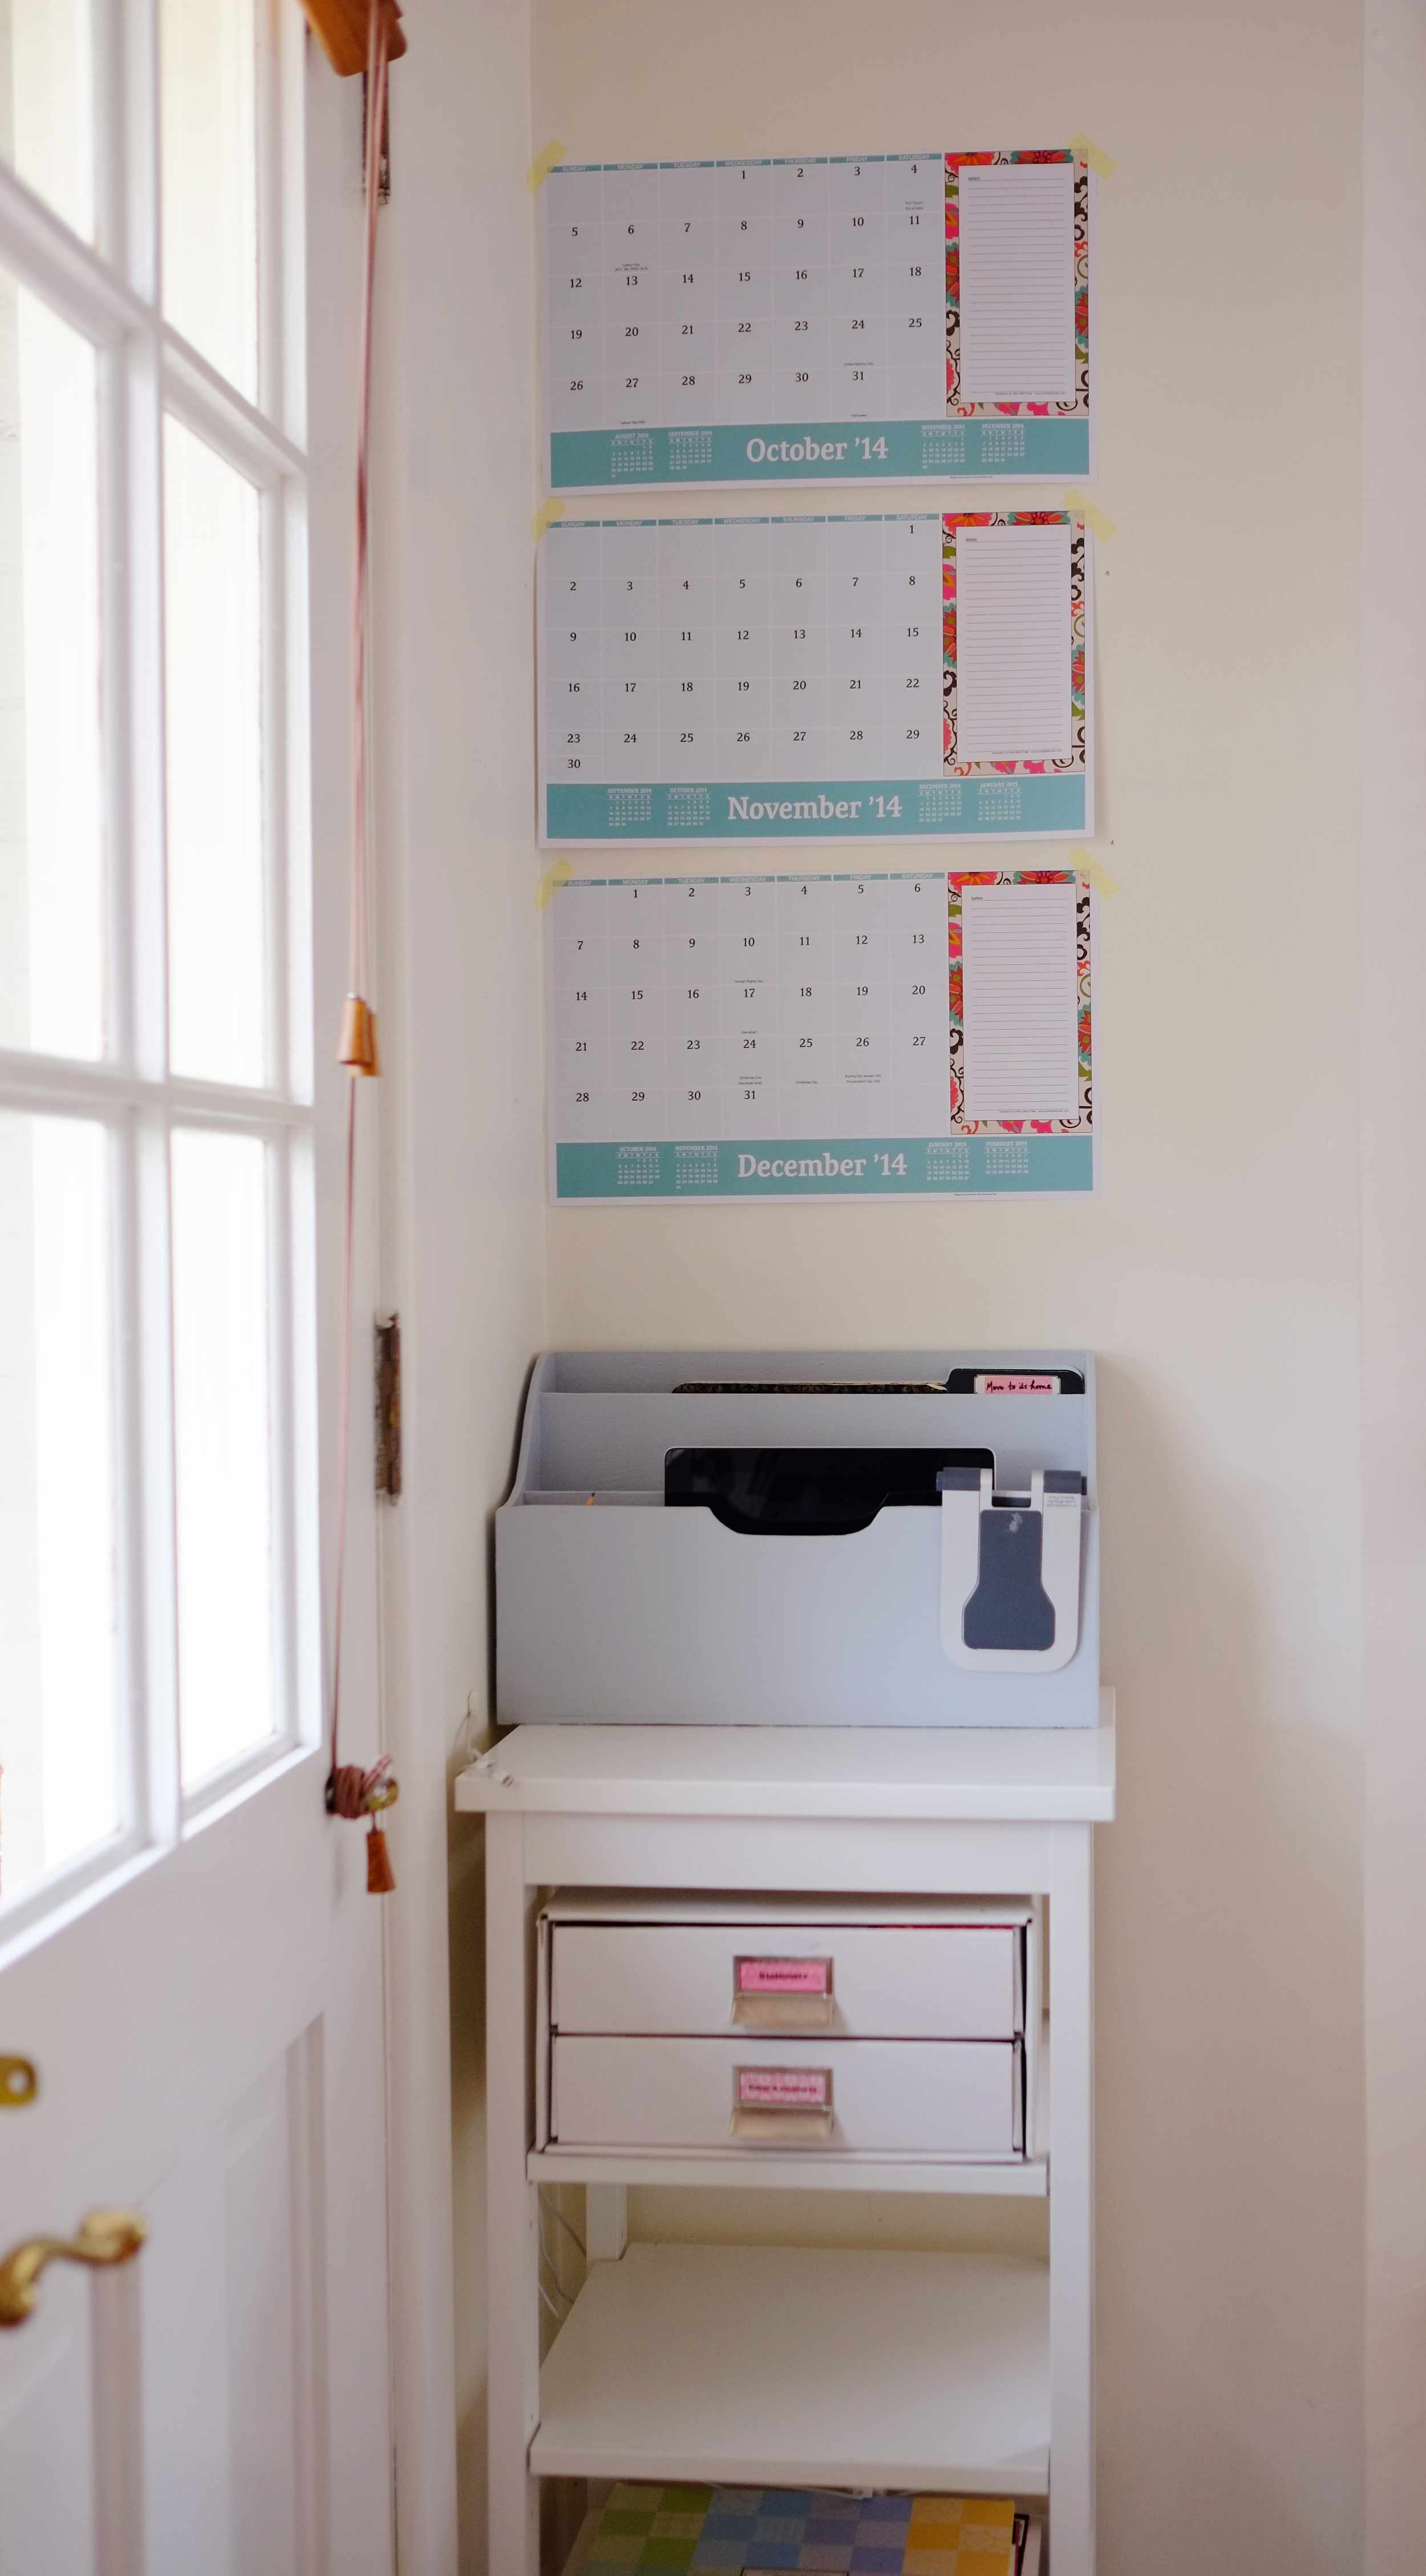 tracking cleaning on calendar